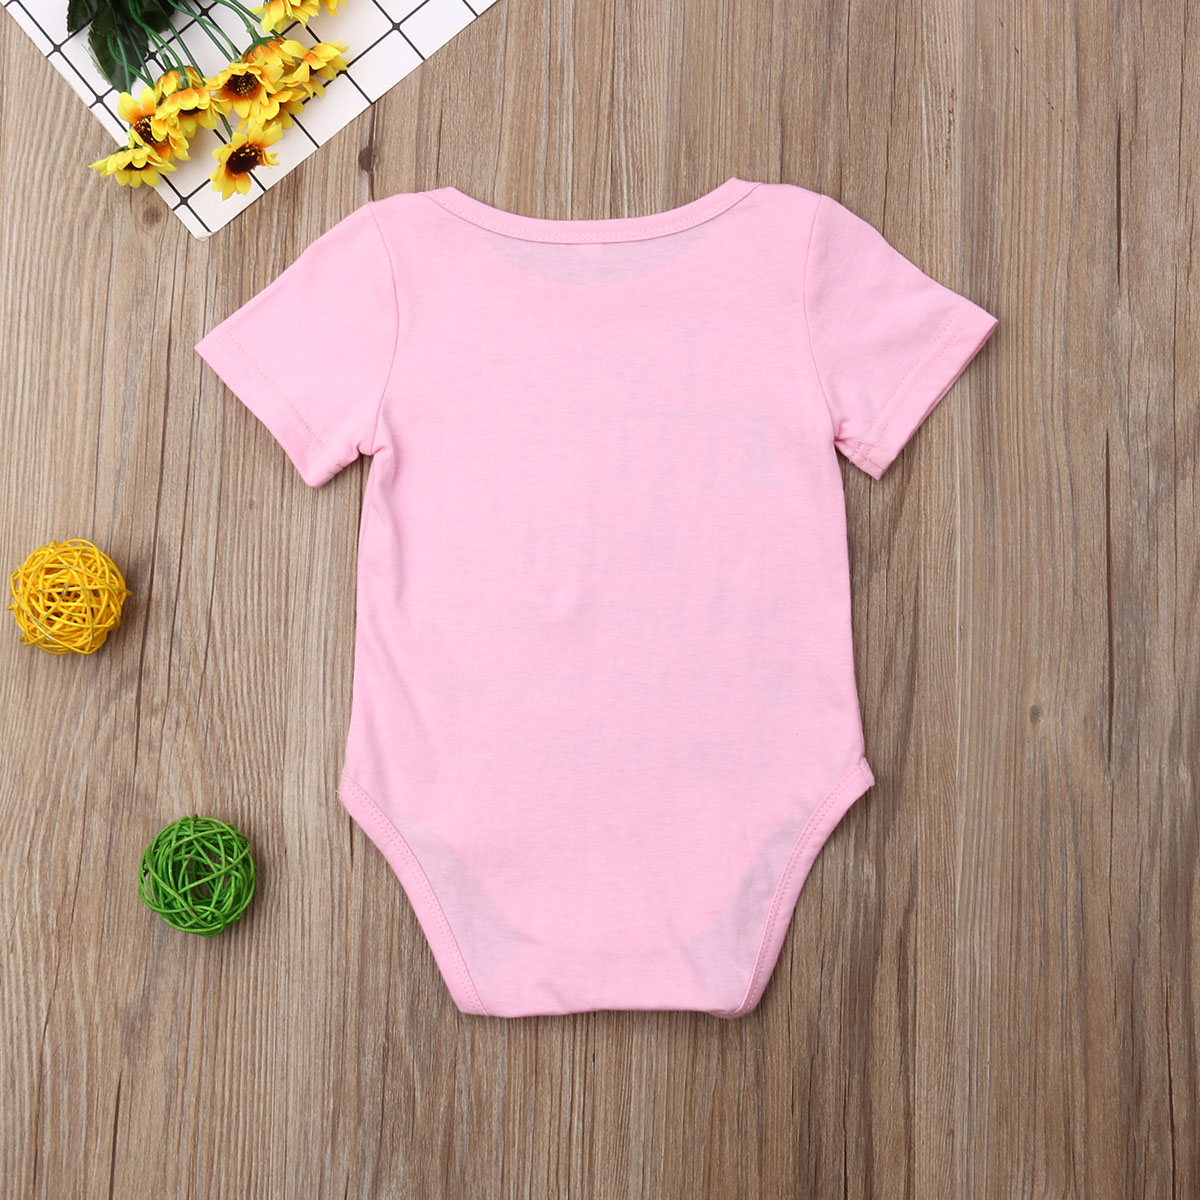 0 18M Newborn Infant Baby Girls Boys Short Sleeve Letter Print Bodysuit Toddler Basic Summer Cute Casual Clothes Kids Outfit in Bodysuits from Mother Kids